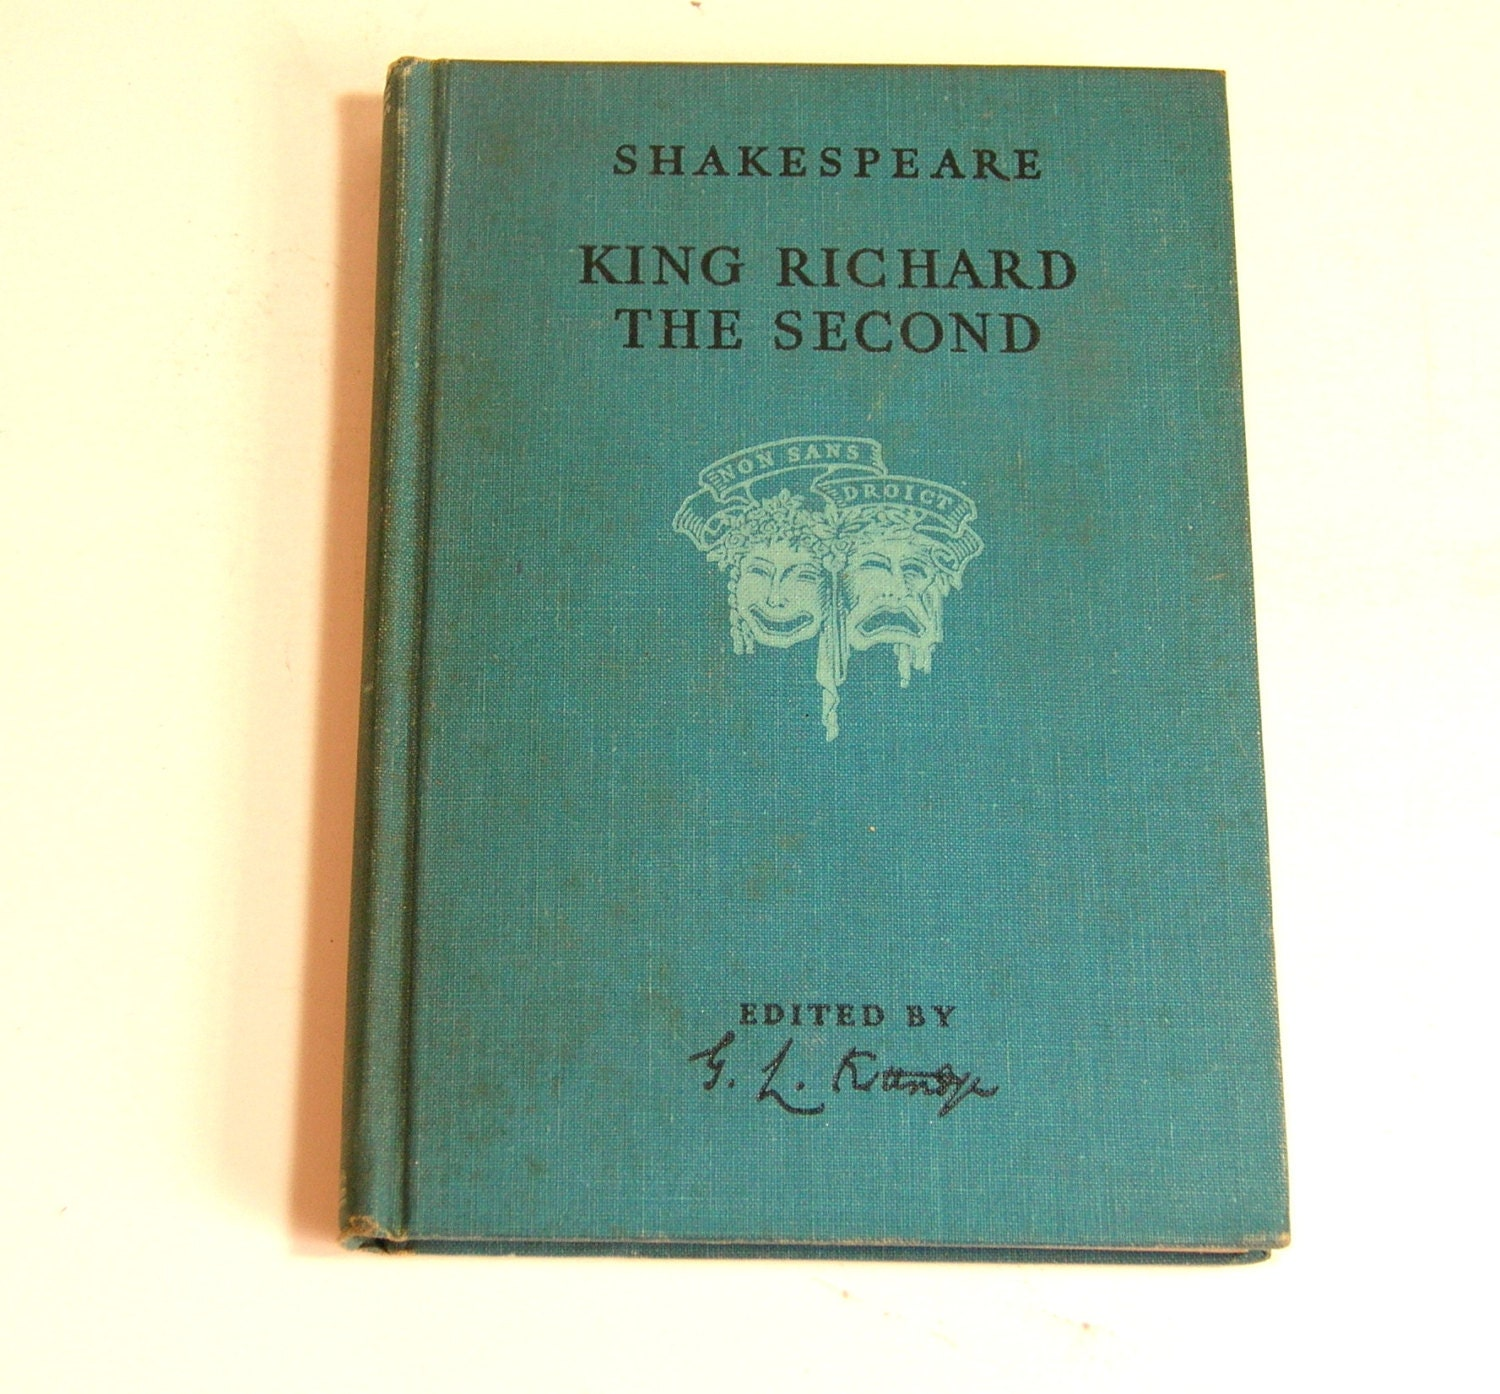 shakespeare richard the second The tragedy of king richard the second is a play written by william shakespeare around 1595 and based on the life of king richard ii of england it is the first part of a tetralogy referred to by scholars as the henriad , followed by three plays concerning richard's successors: henry iv, part i  henry iv, part ii  and henry v .